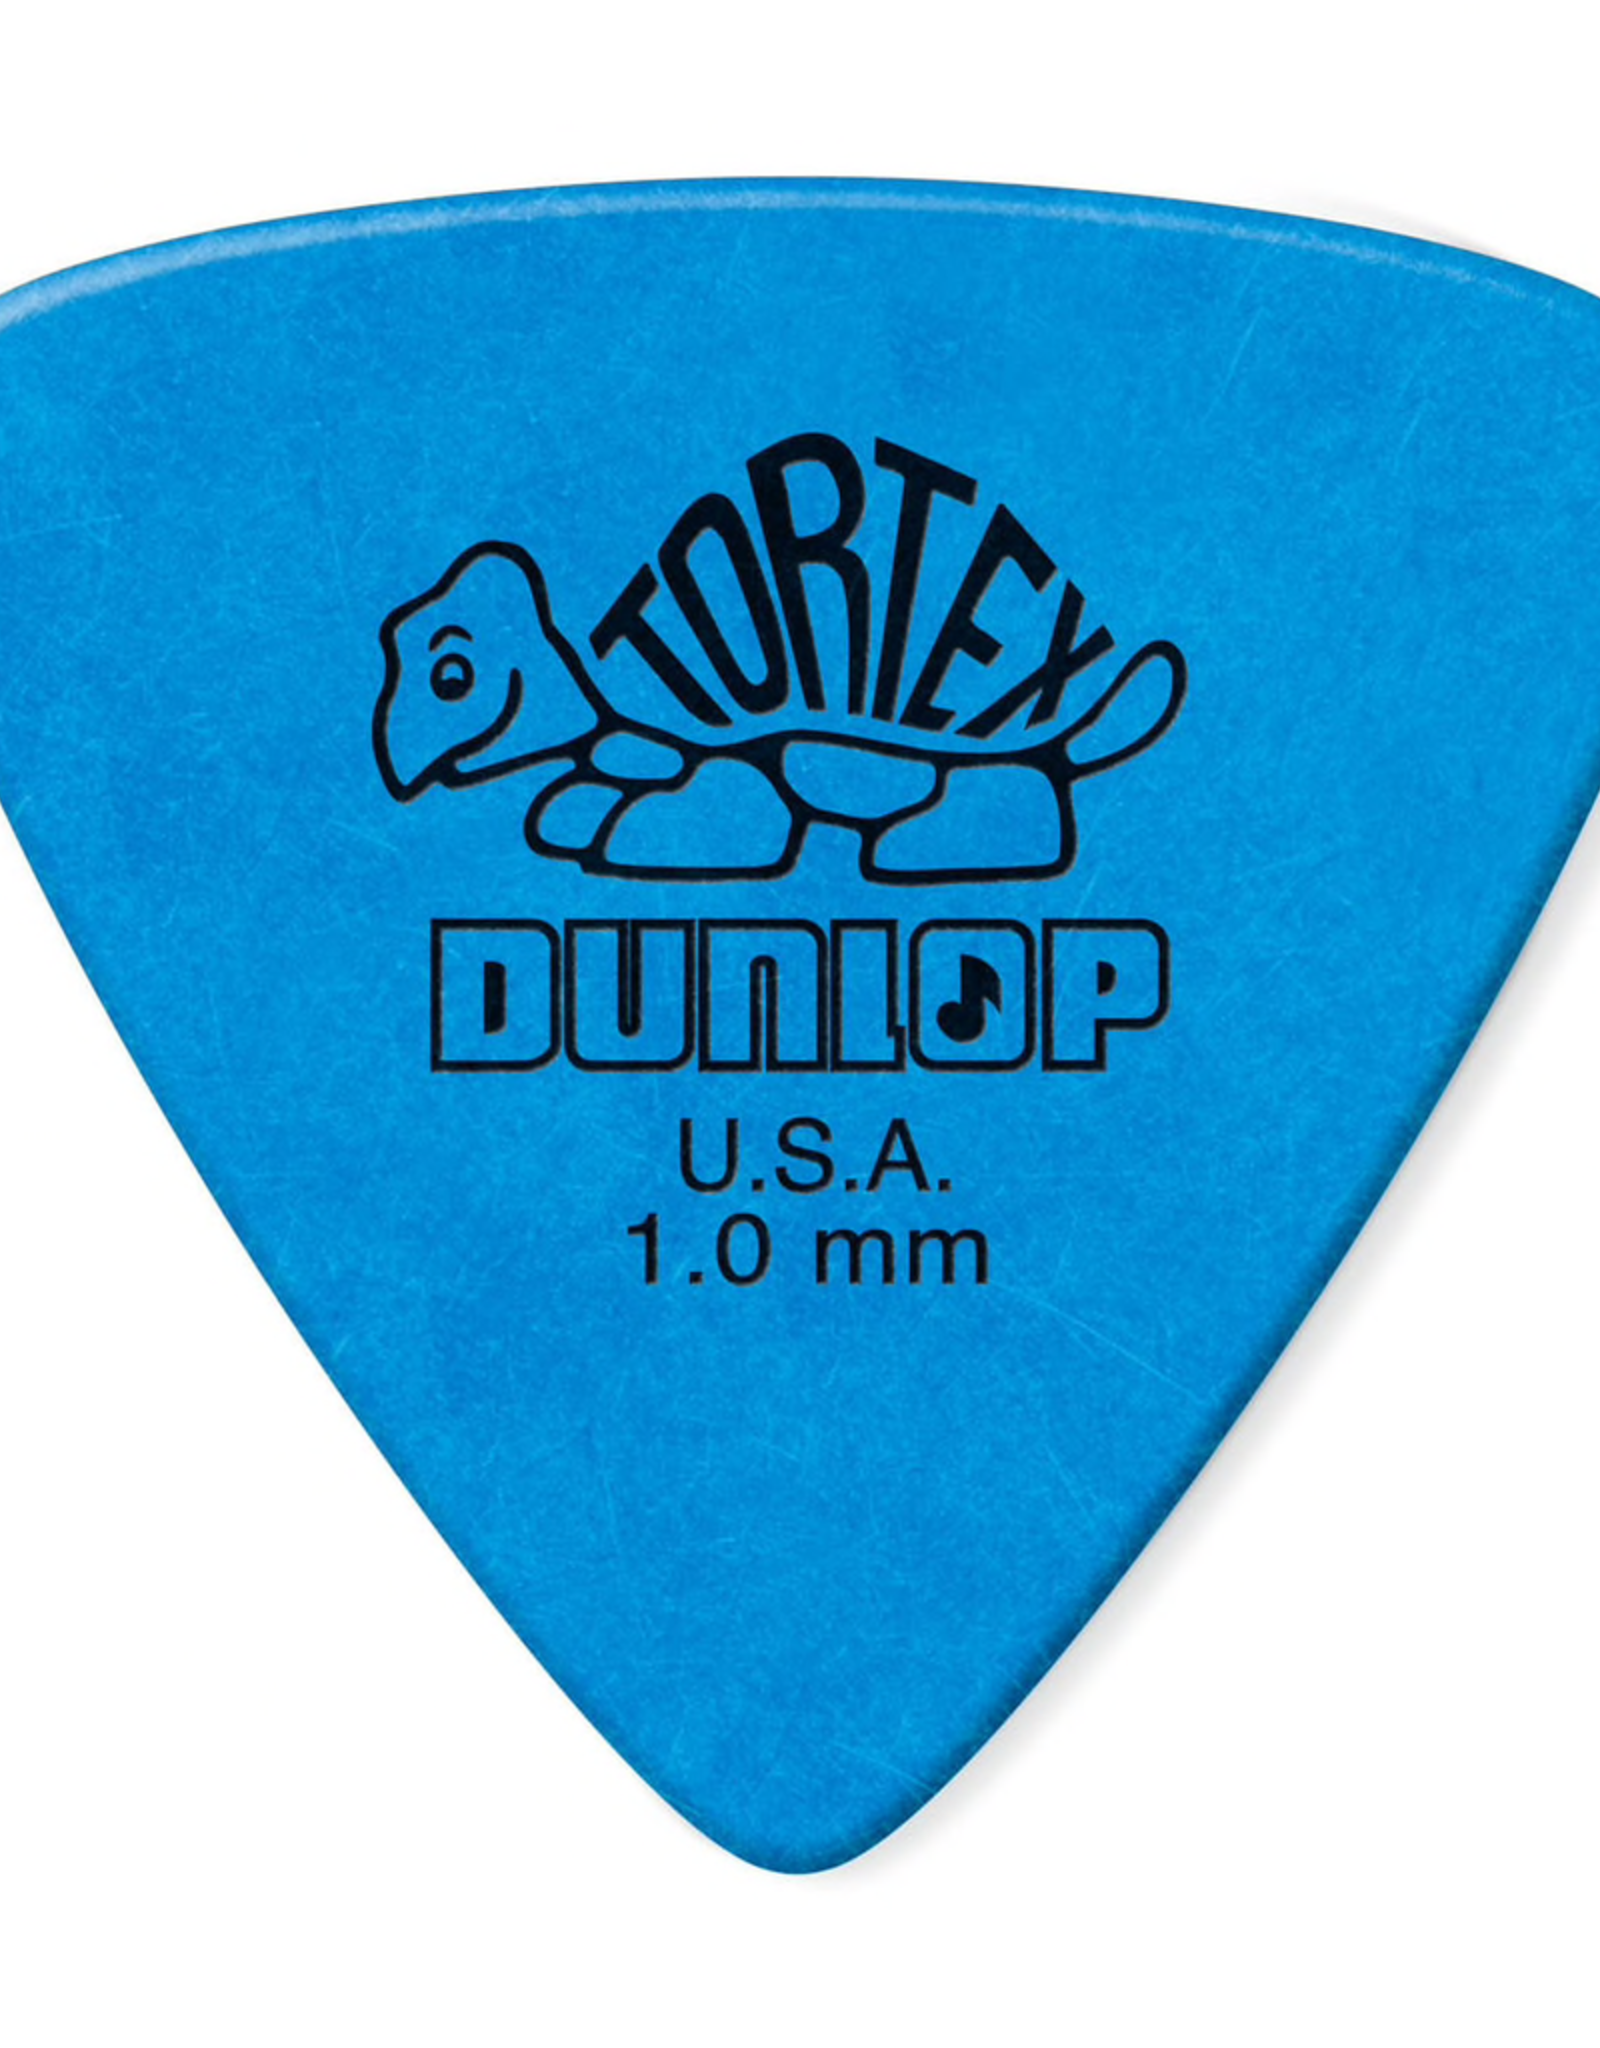 Dunlop Dunlop Tortex Triangle 1.0mm Pick - 6 Pack